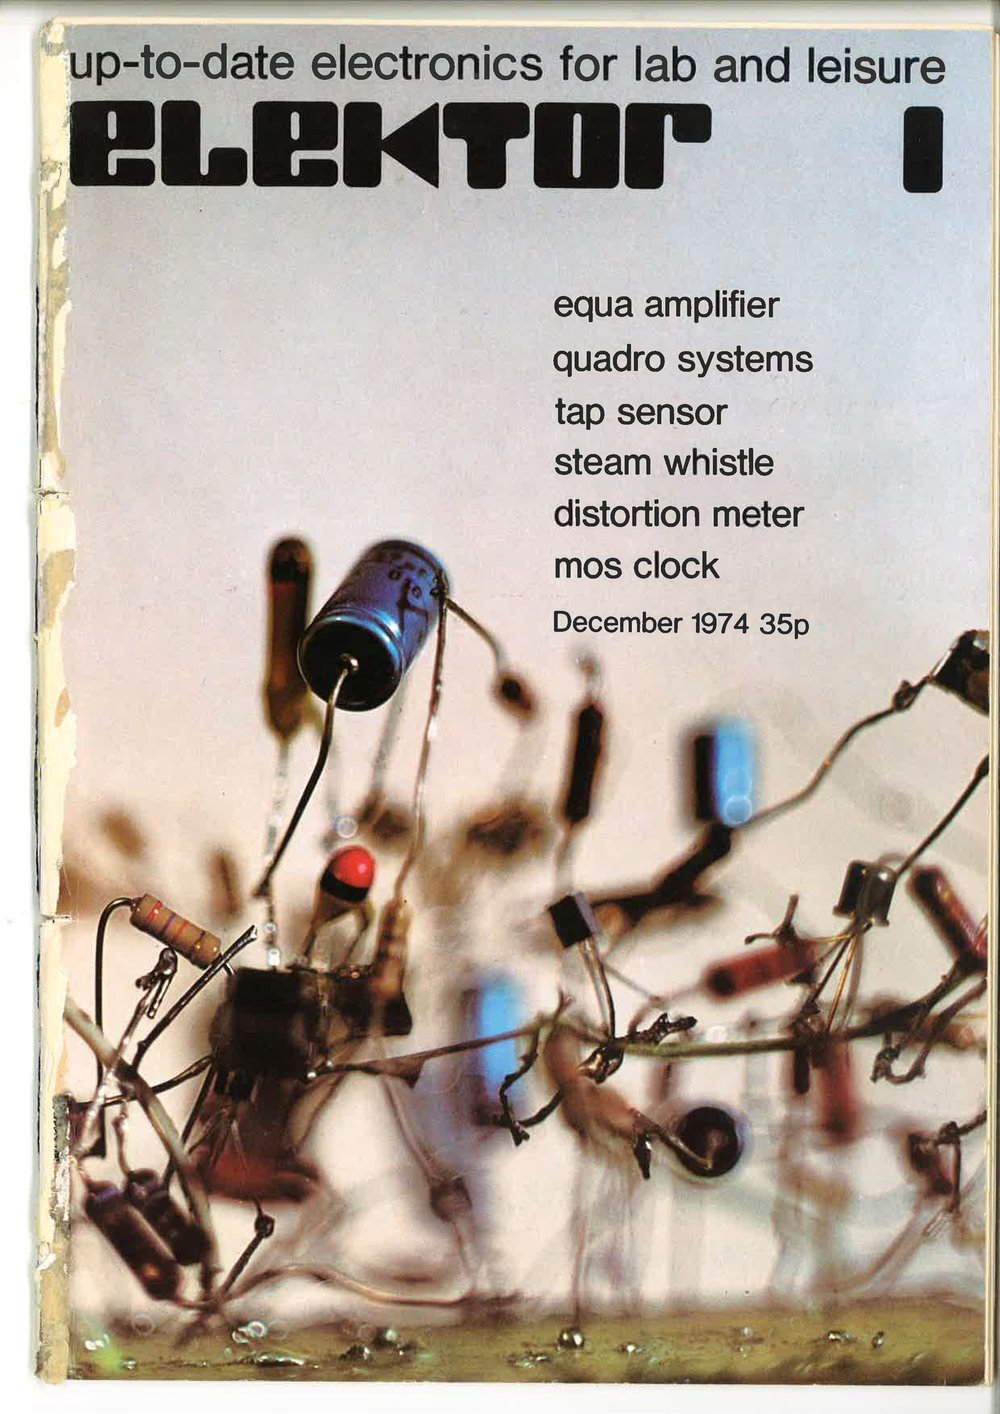 The cover of the first Elektor English edition, December 1974.